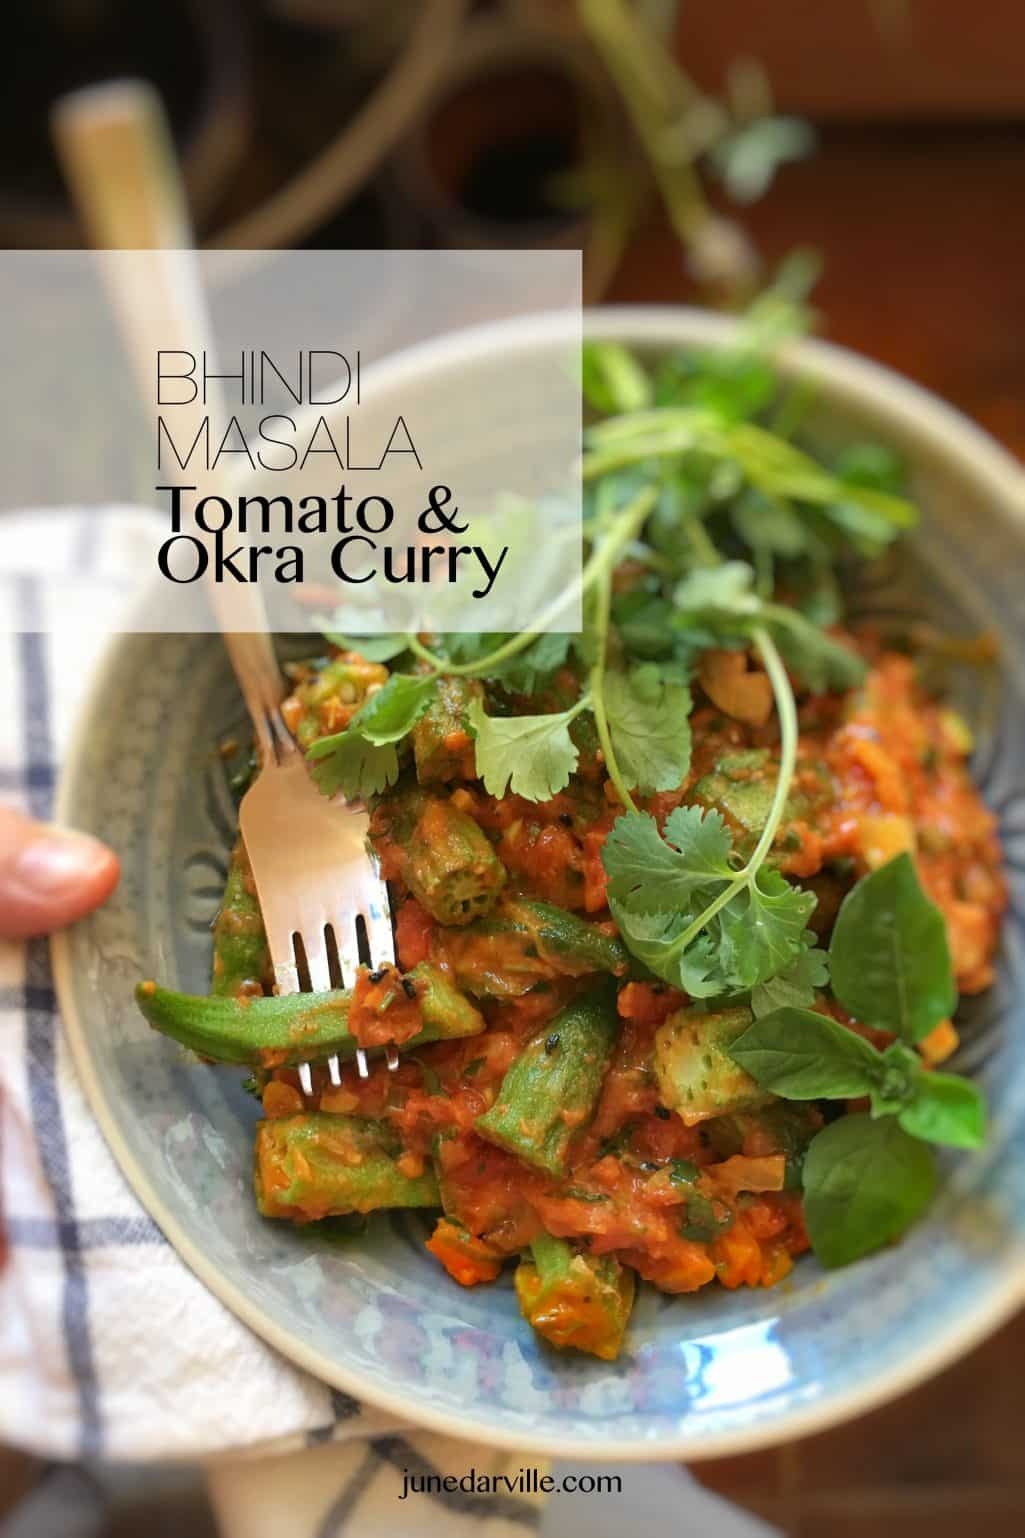 This classic okra curry contains ripe tomatoes, onion and loads of Indian spices! Serve it hot or cold, as a spicy side dish or a light lunch!